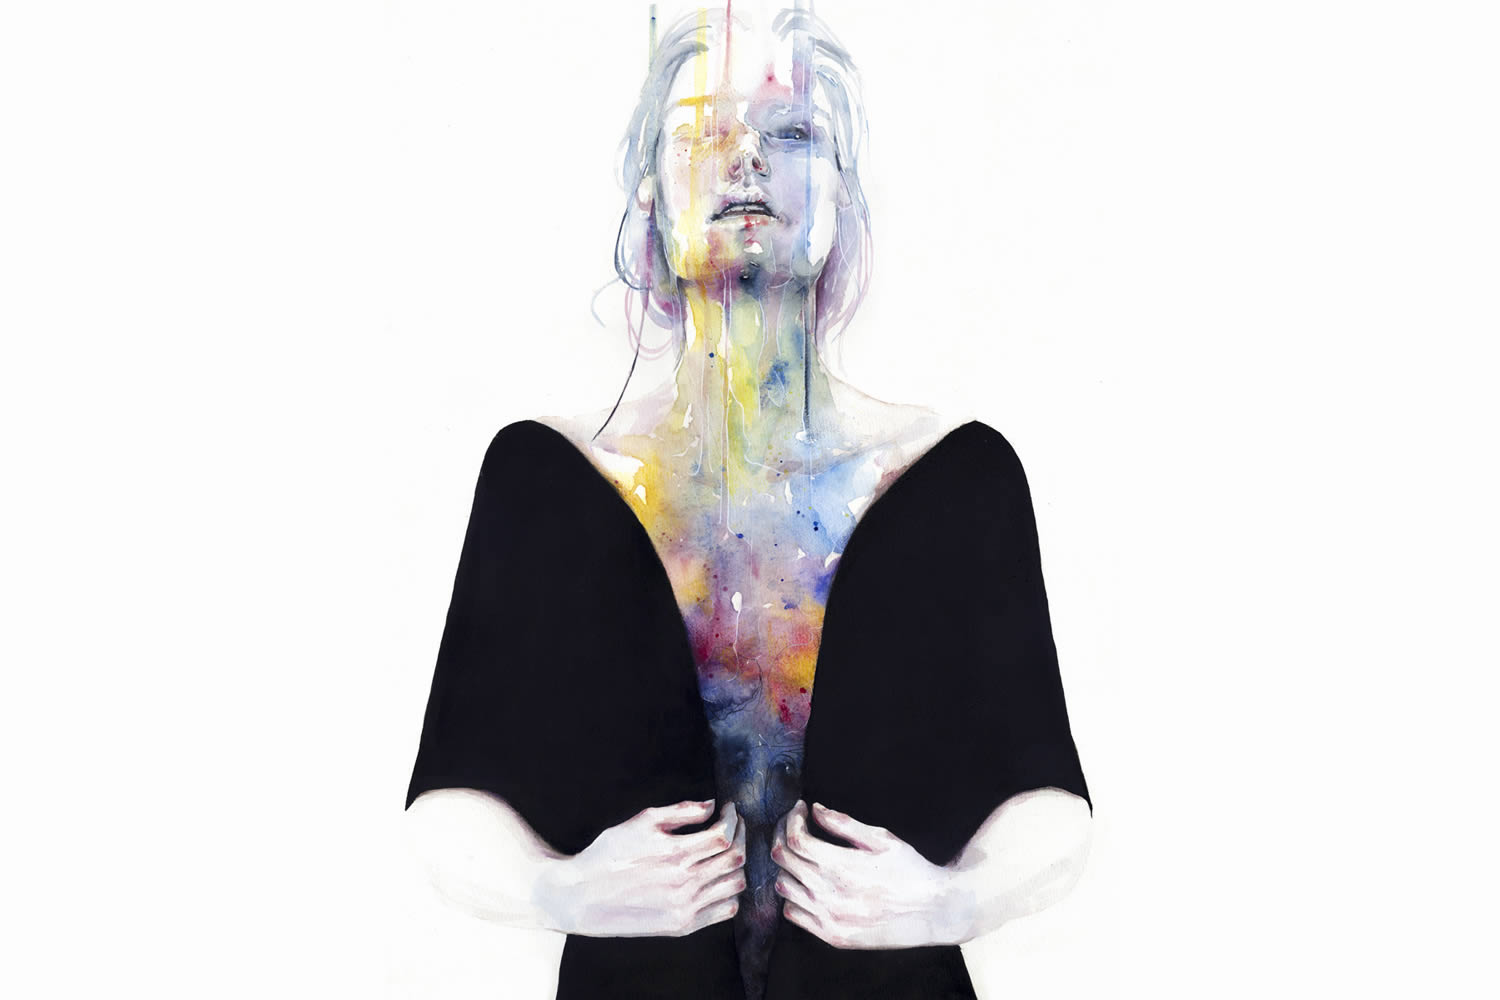 rainbow interior, body, art by agnes cecile